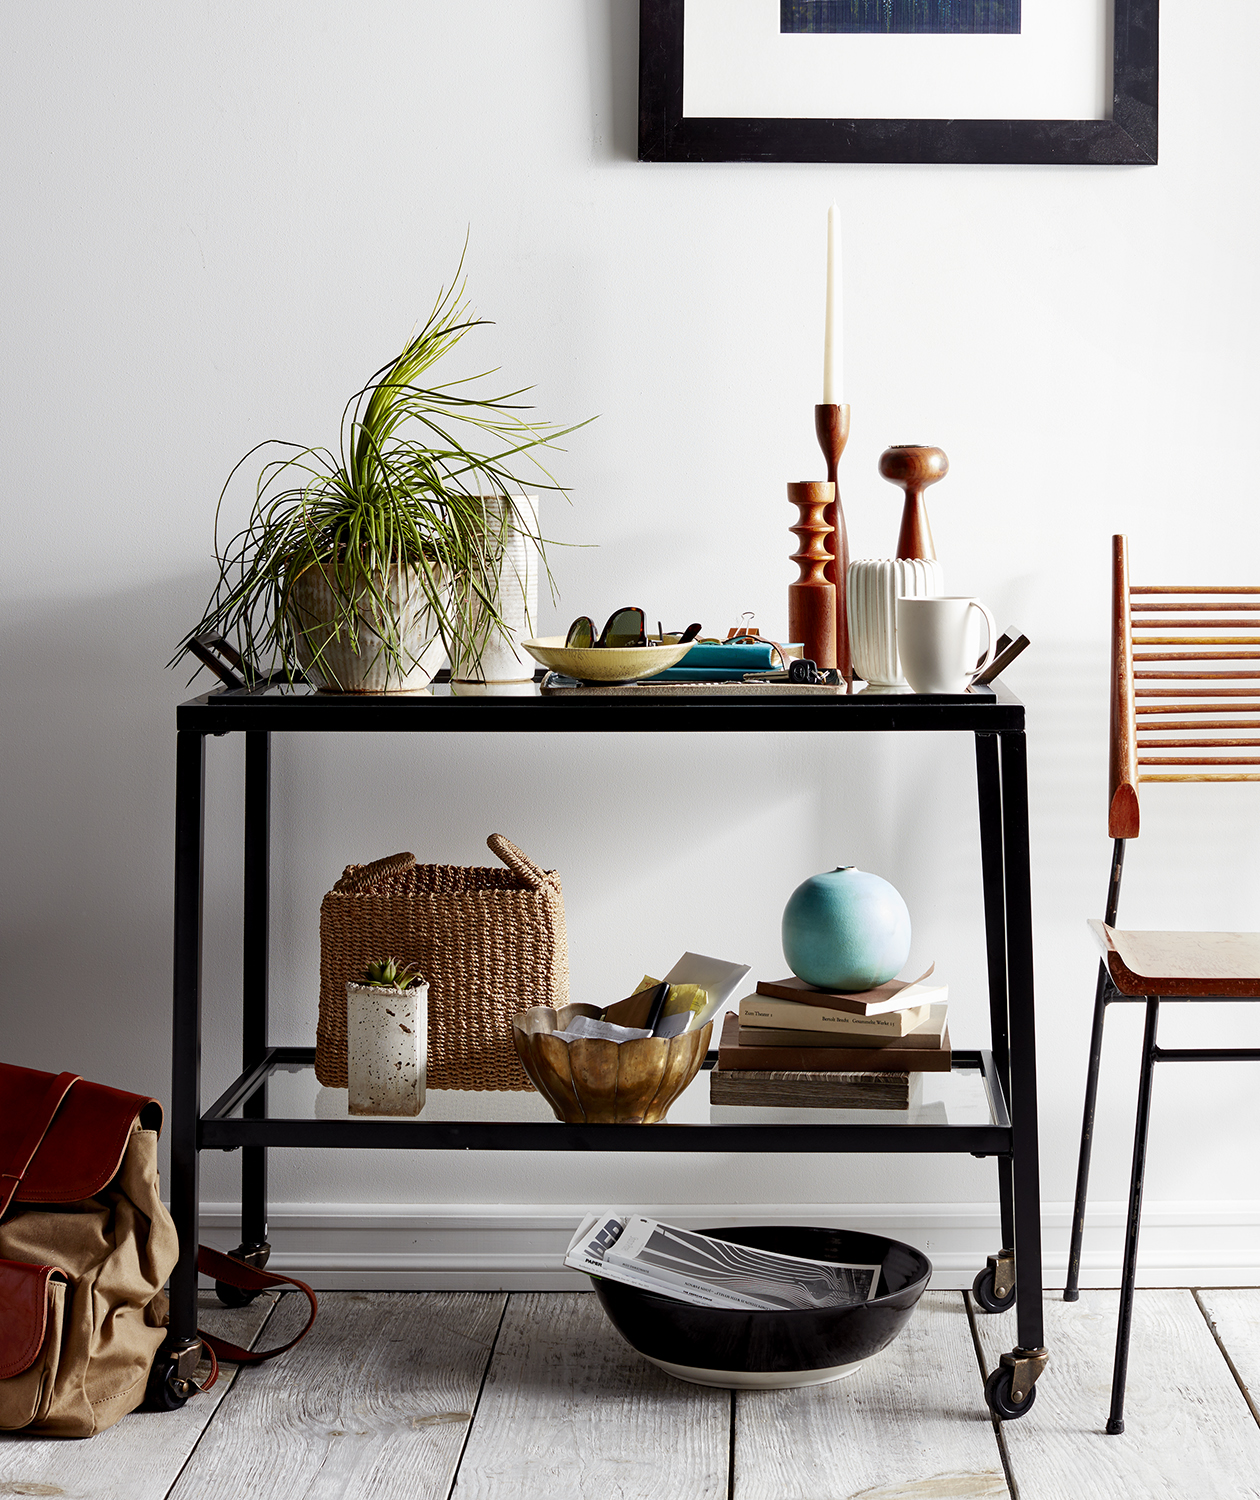 5 genius ways to style a bar cart for every occasion real simple. Black Bedroom Furniture Sets. Home Design Ideas